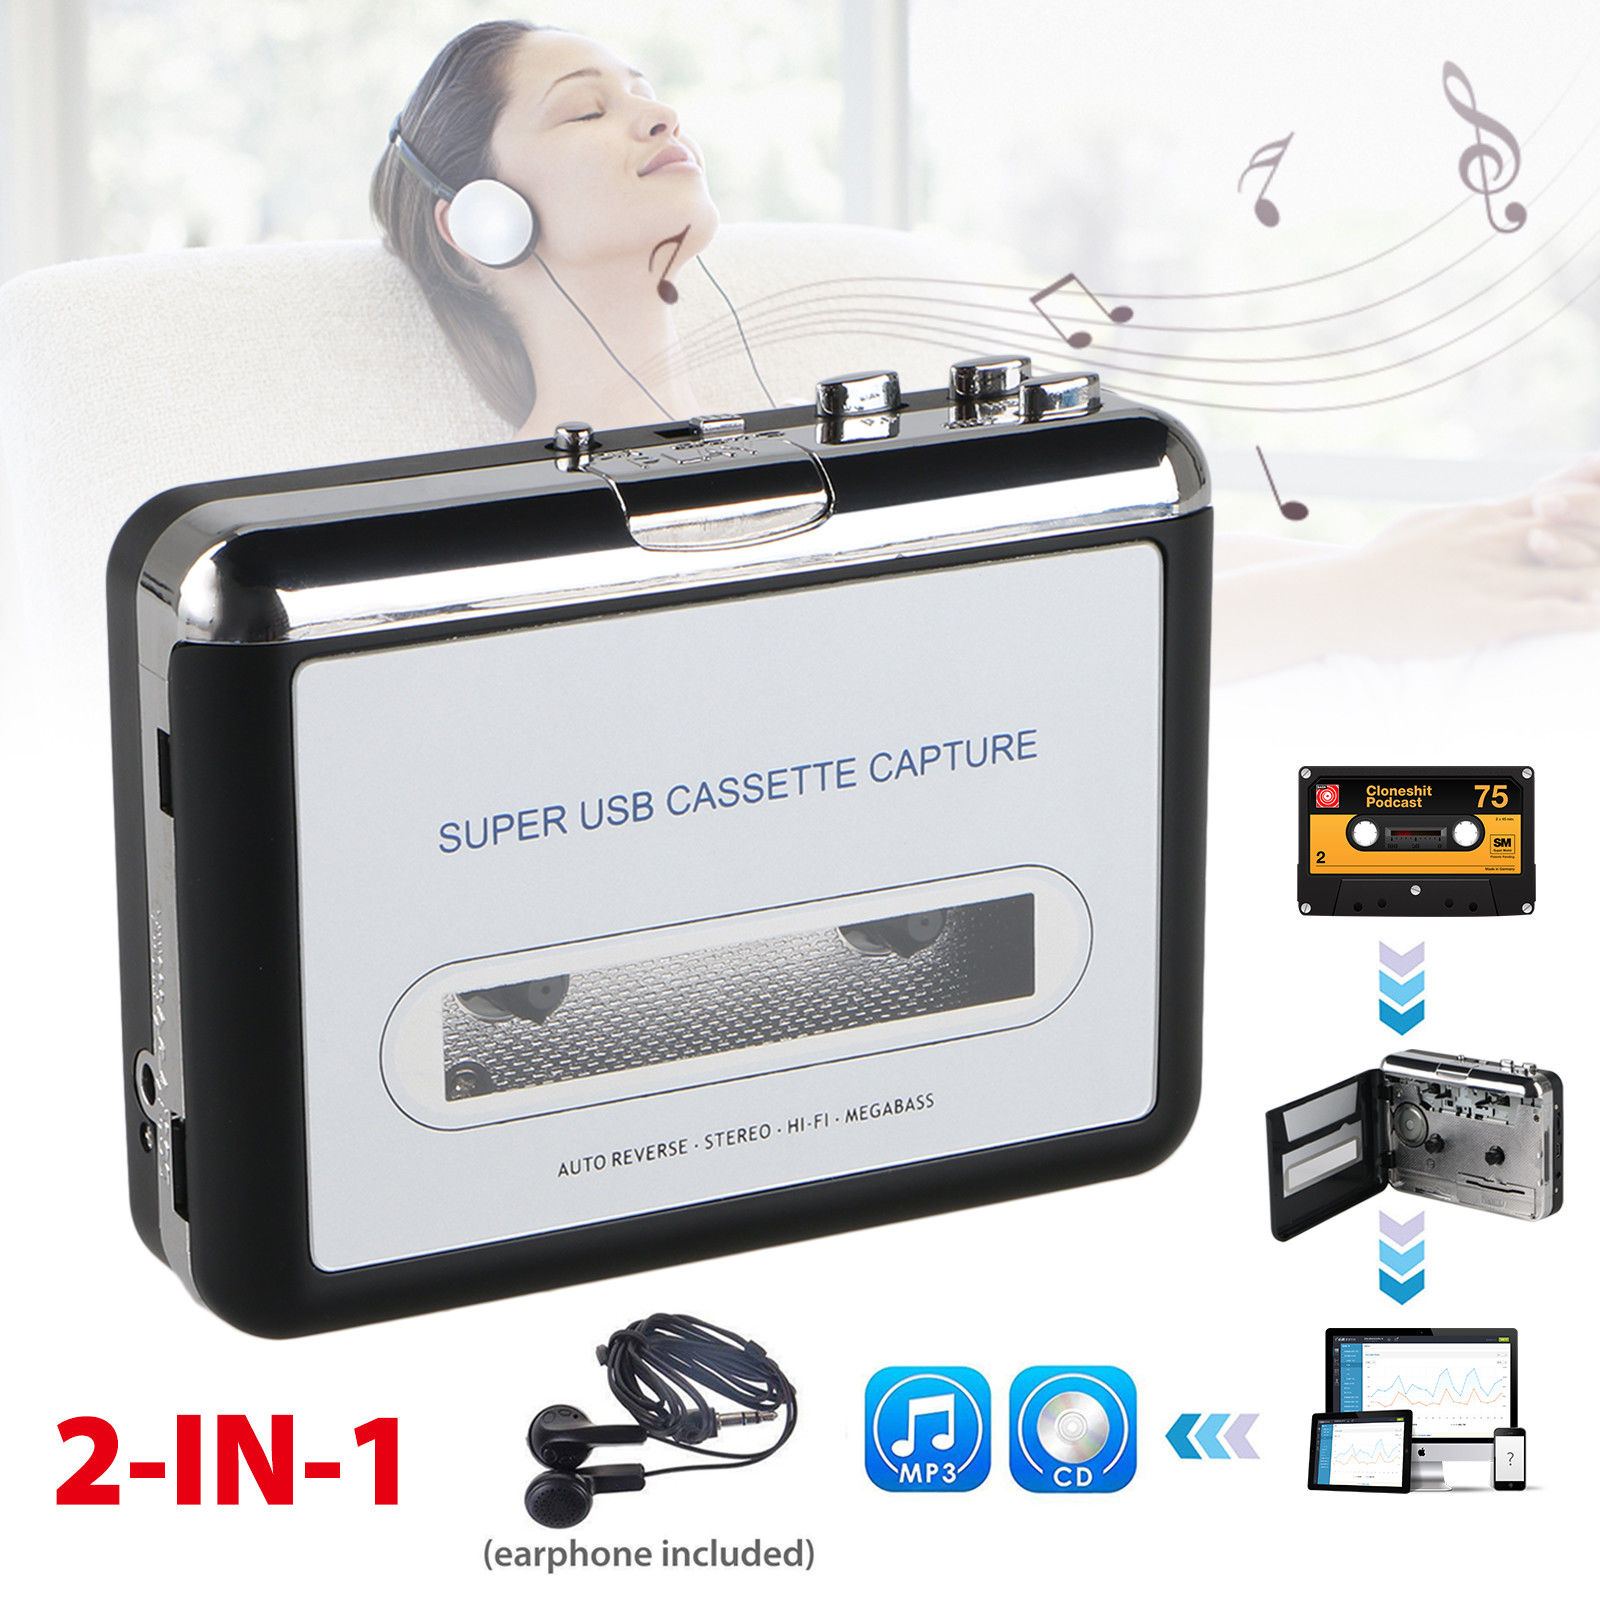 EEEkit Cassette Tape to MP3 CD Converter via USB, Portable Cassette Player Convert Cassette Tape to Digital MP3, Compatible with Laptop, Mac and PC, with Earphones